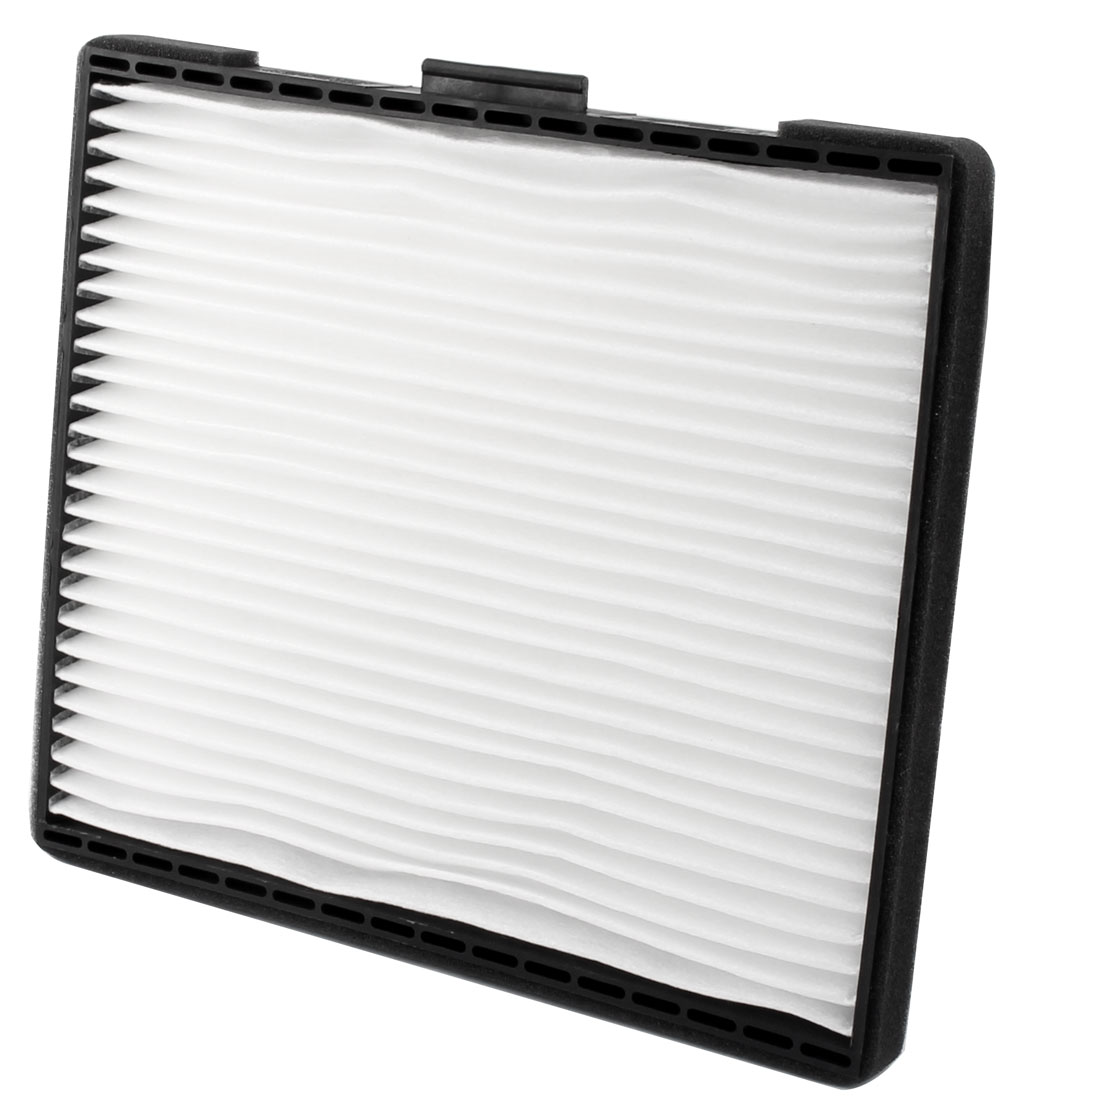 Automotive Air Conditioner Fresh Breeze Cabin Dust Filter White 27 x 23.5 x 2cm